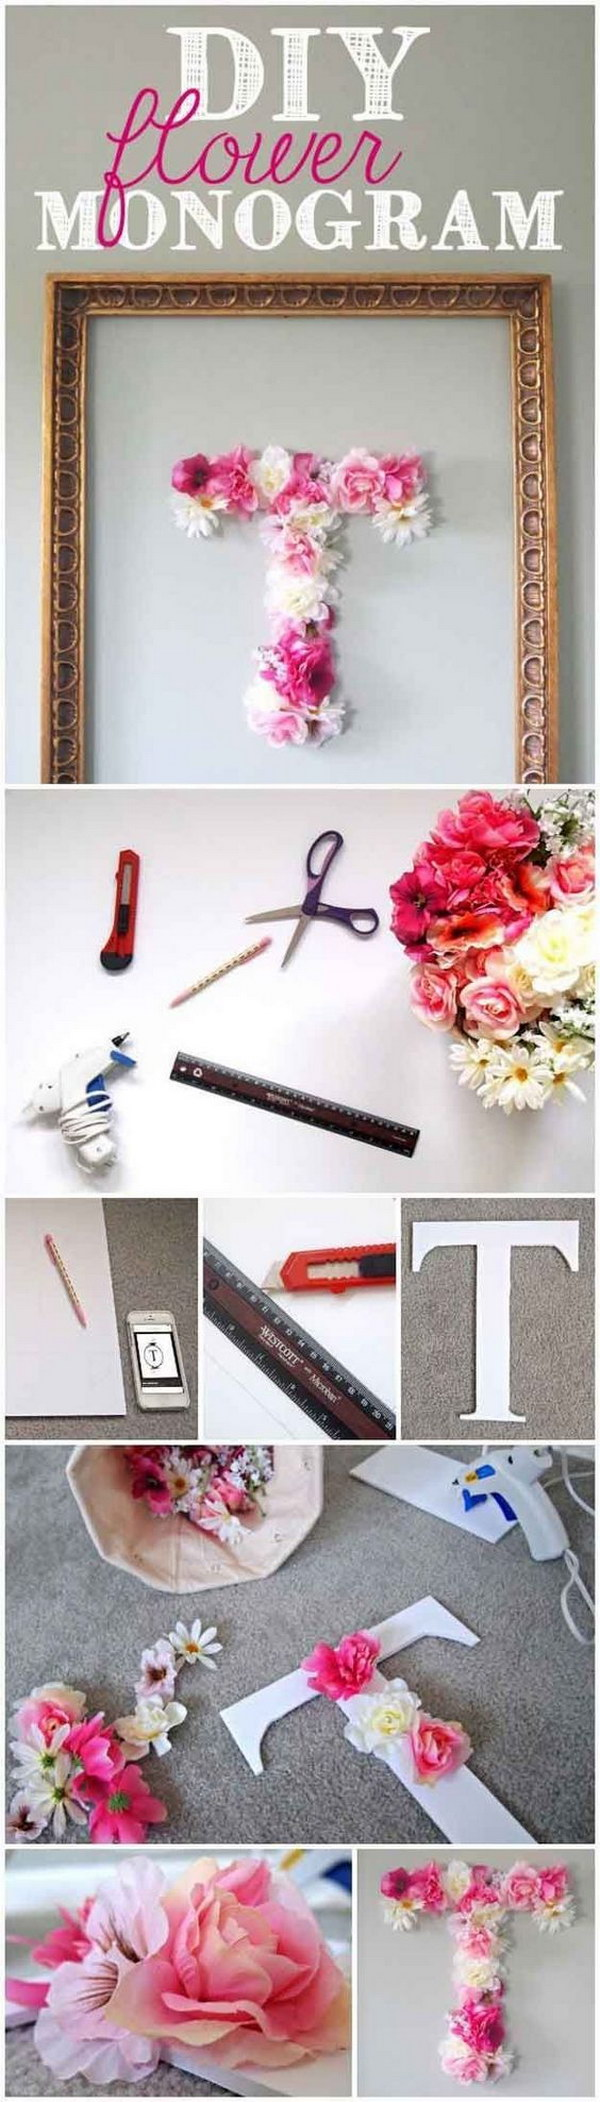 DIY Faux Flower Monogram